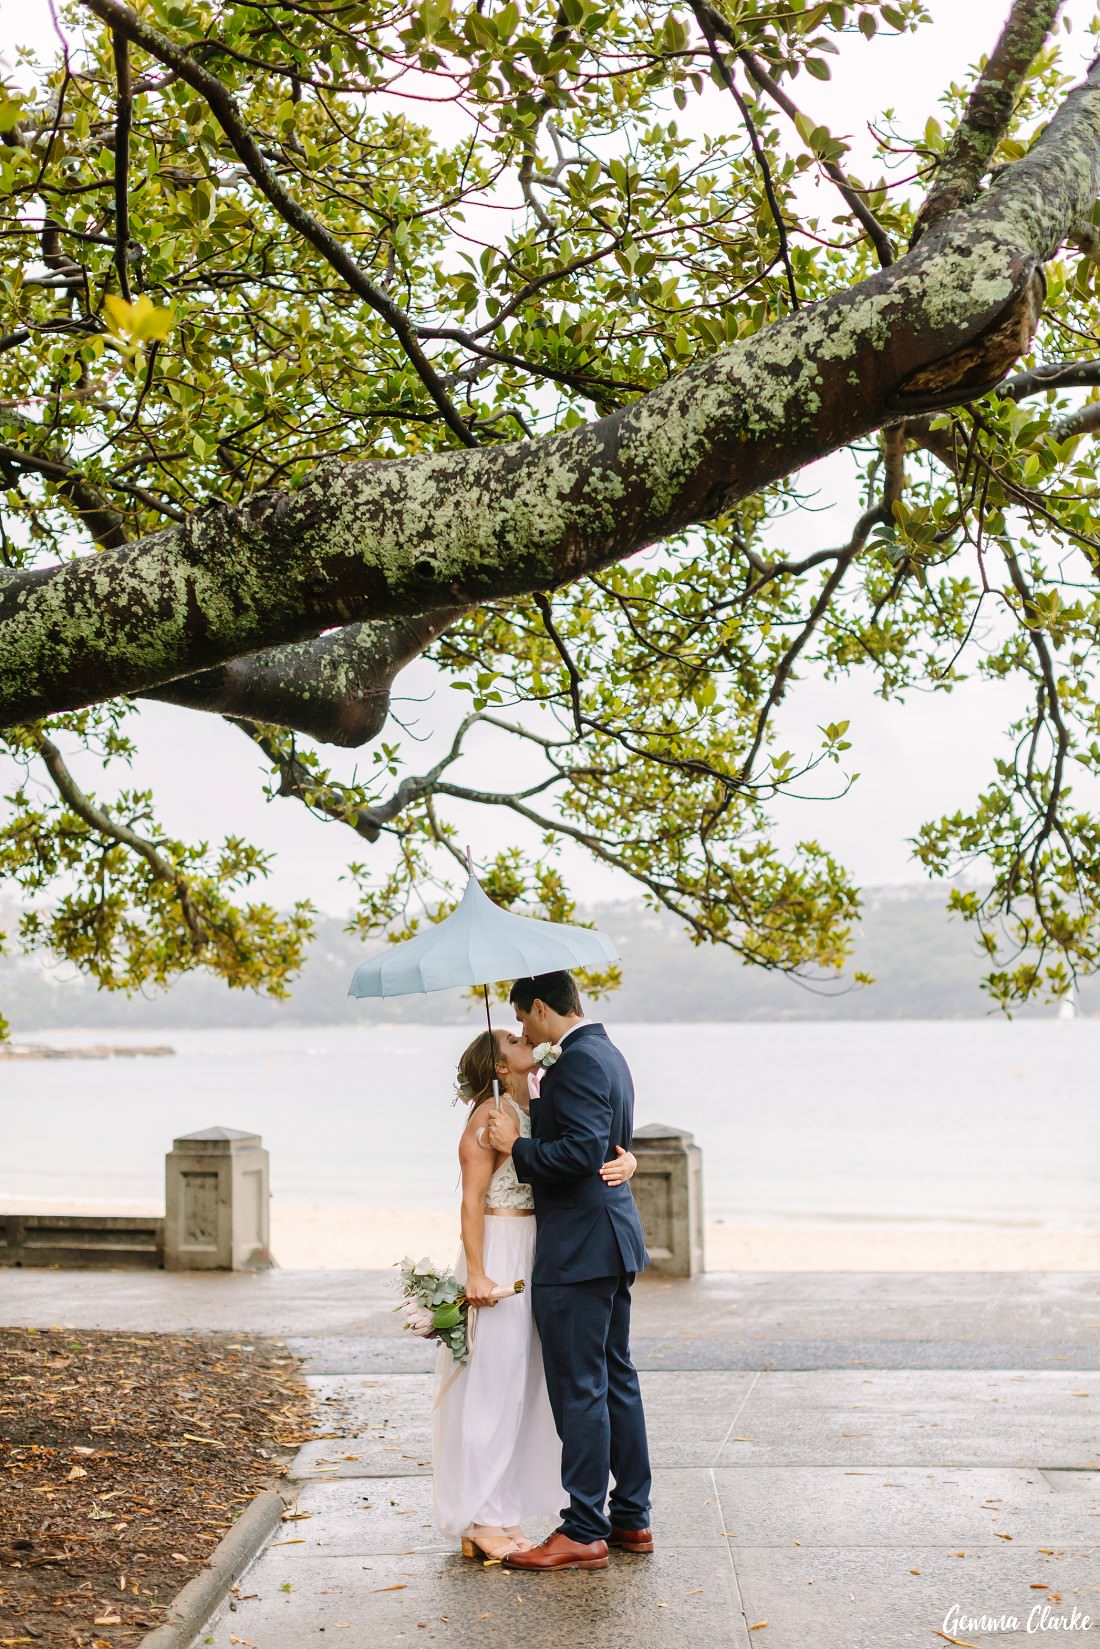 Bride and Groom snuggle under a big tree and blue umbrella on Balmoral Beach at this Sydney rainy day wedding